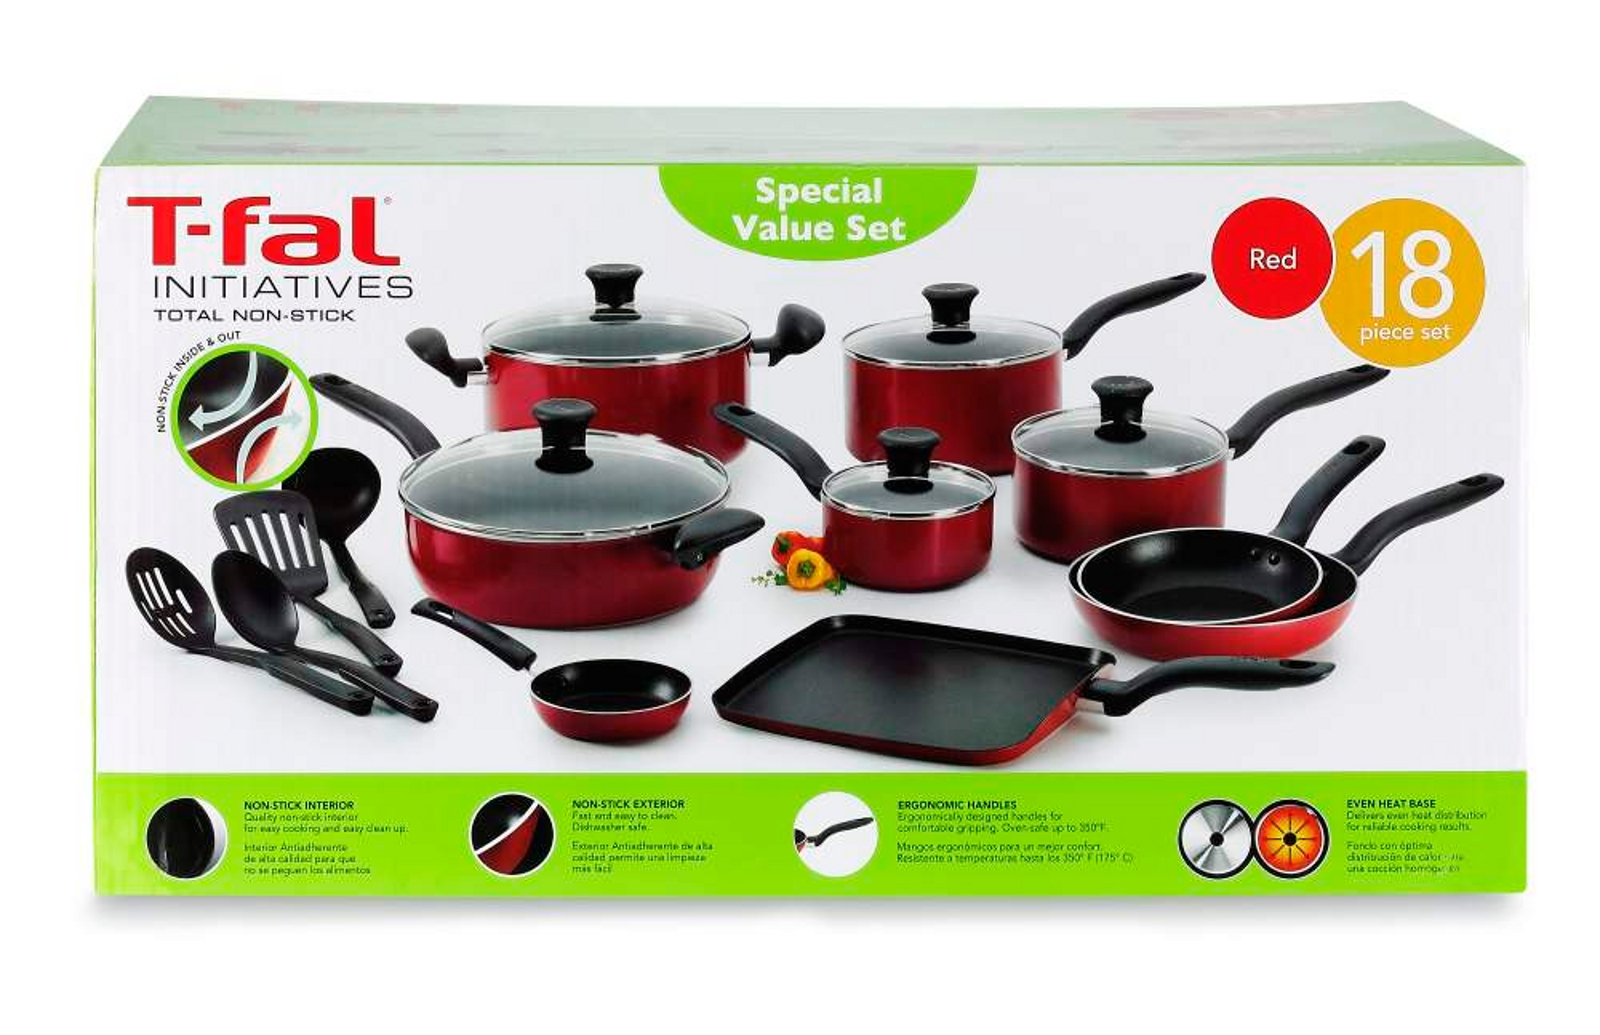 T-fal Initiatives 18-Piece Nonstick Inside and Out Cookware Set, Red